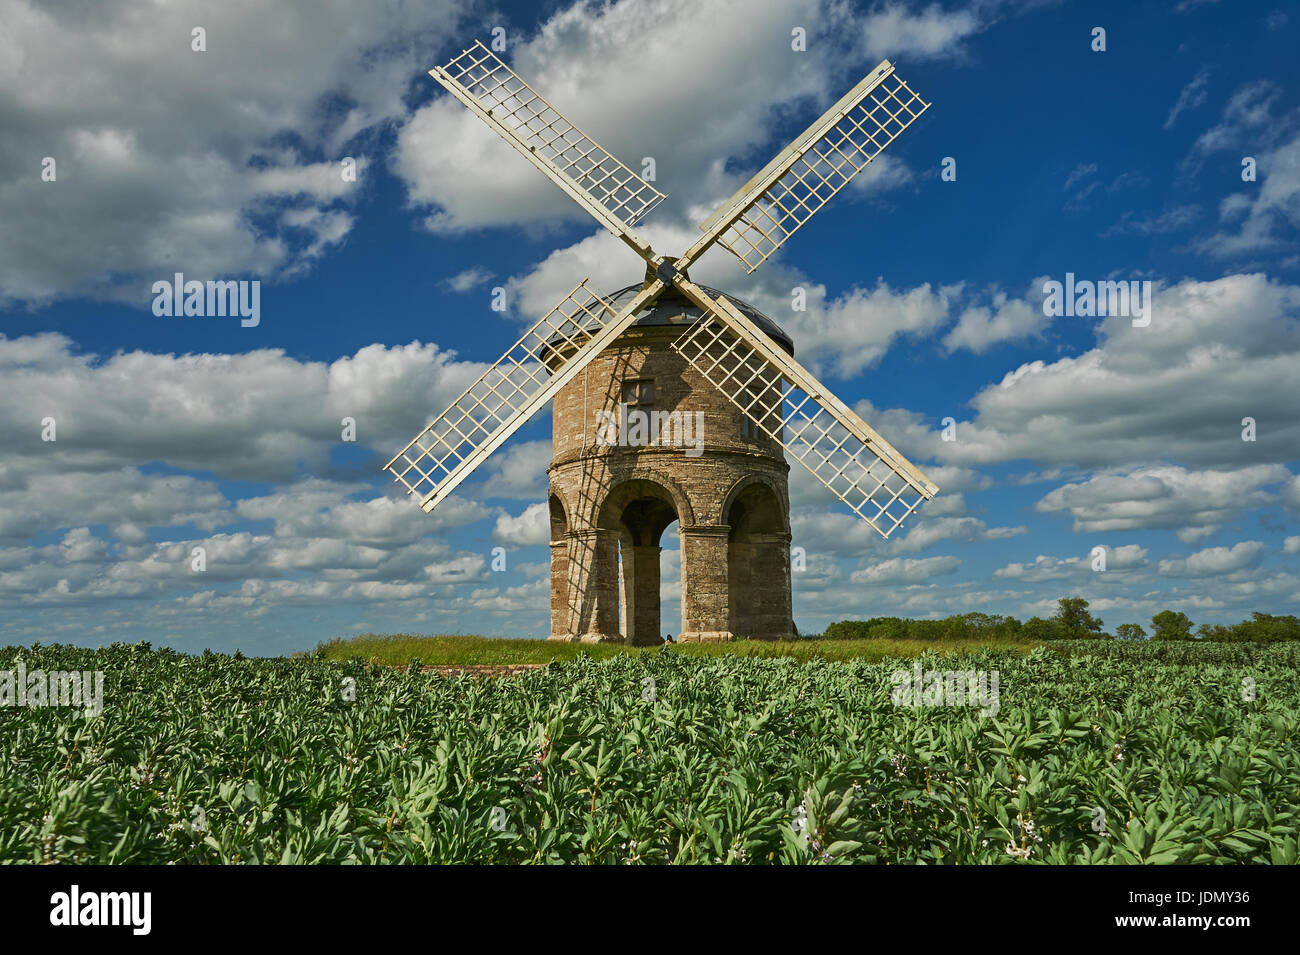 Chesterton Windmill in Warwickshire is surrounded by a crop of broad beans. - Stock Image